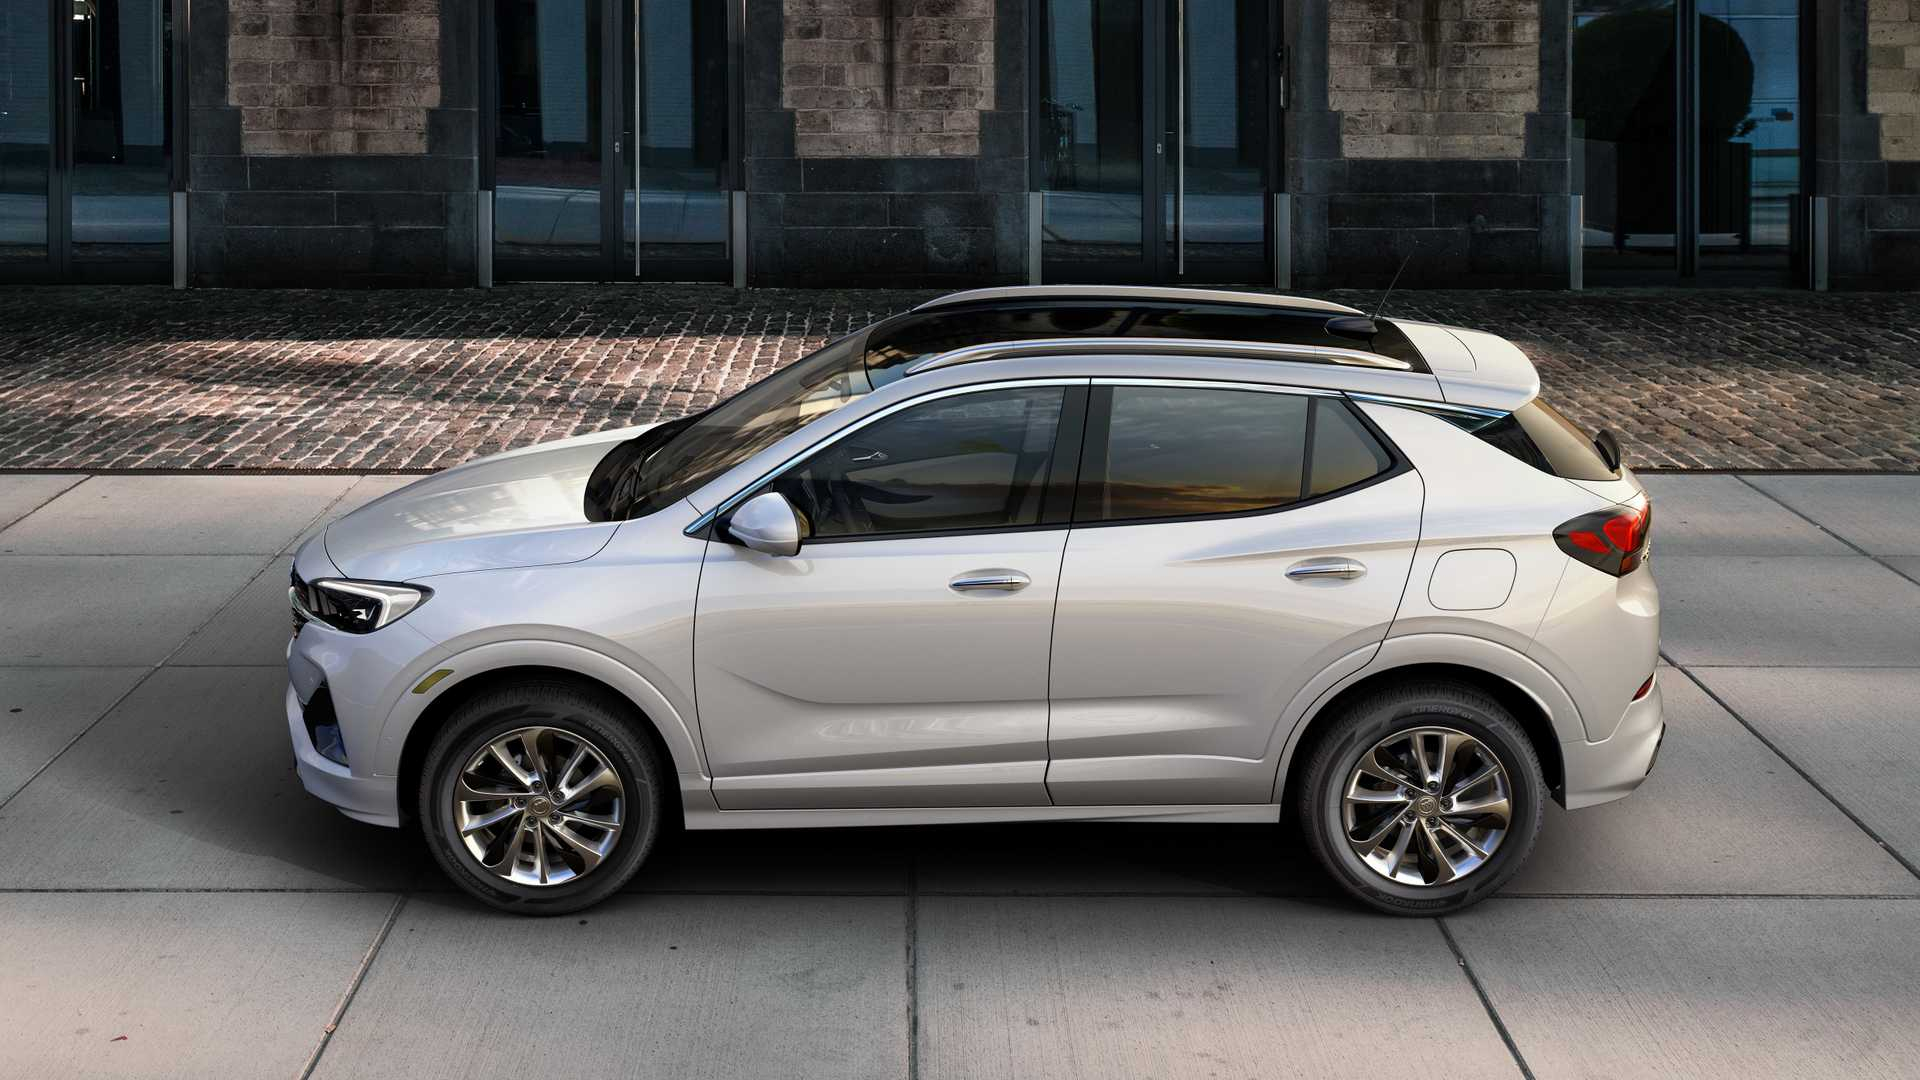 2021 Buick Encore Gx Details Emerge: Styling Tweaks, More Tech When Will The 2021 Buick Encore Gx Be Available